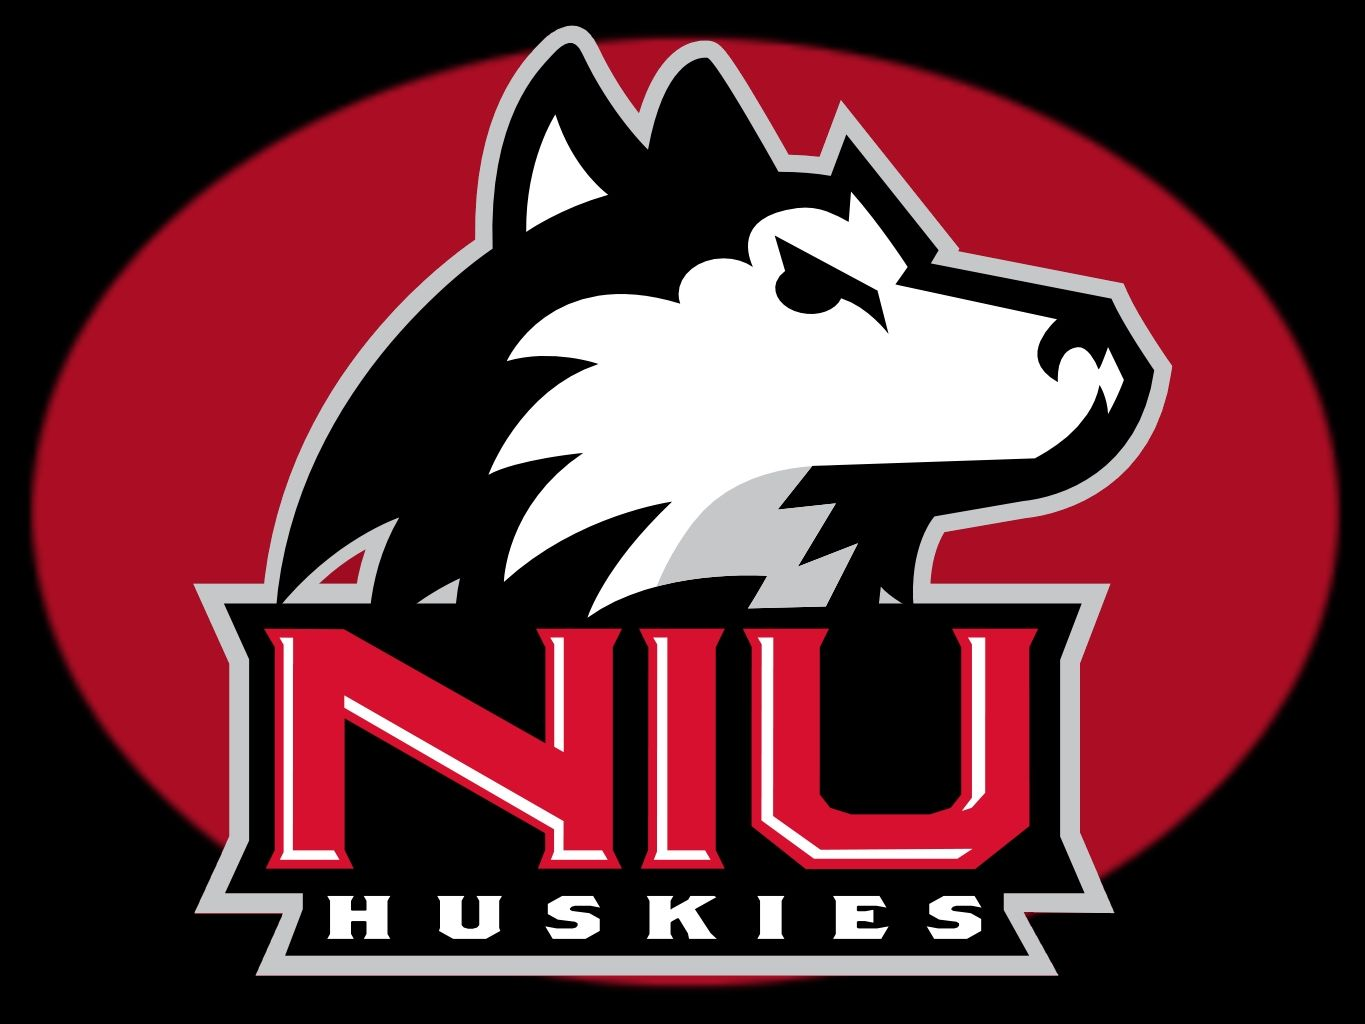 Niu Huskies Northern Illinois University Huskies Ncaa National Collegiate Athletic Associ Northern Illinois Huskies Northern Illinois University Logo Wall